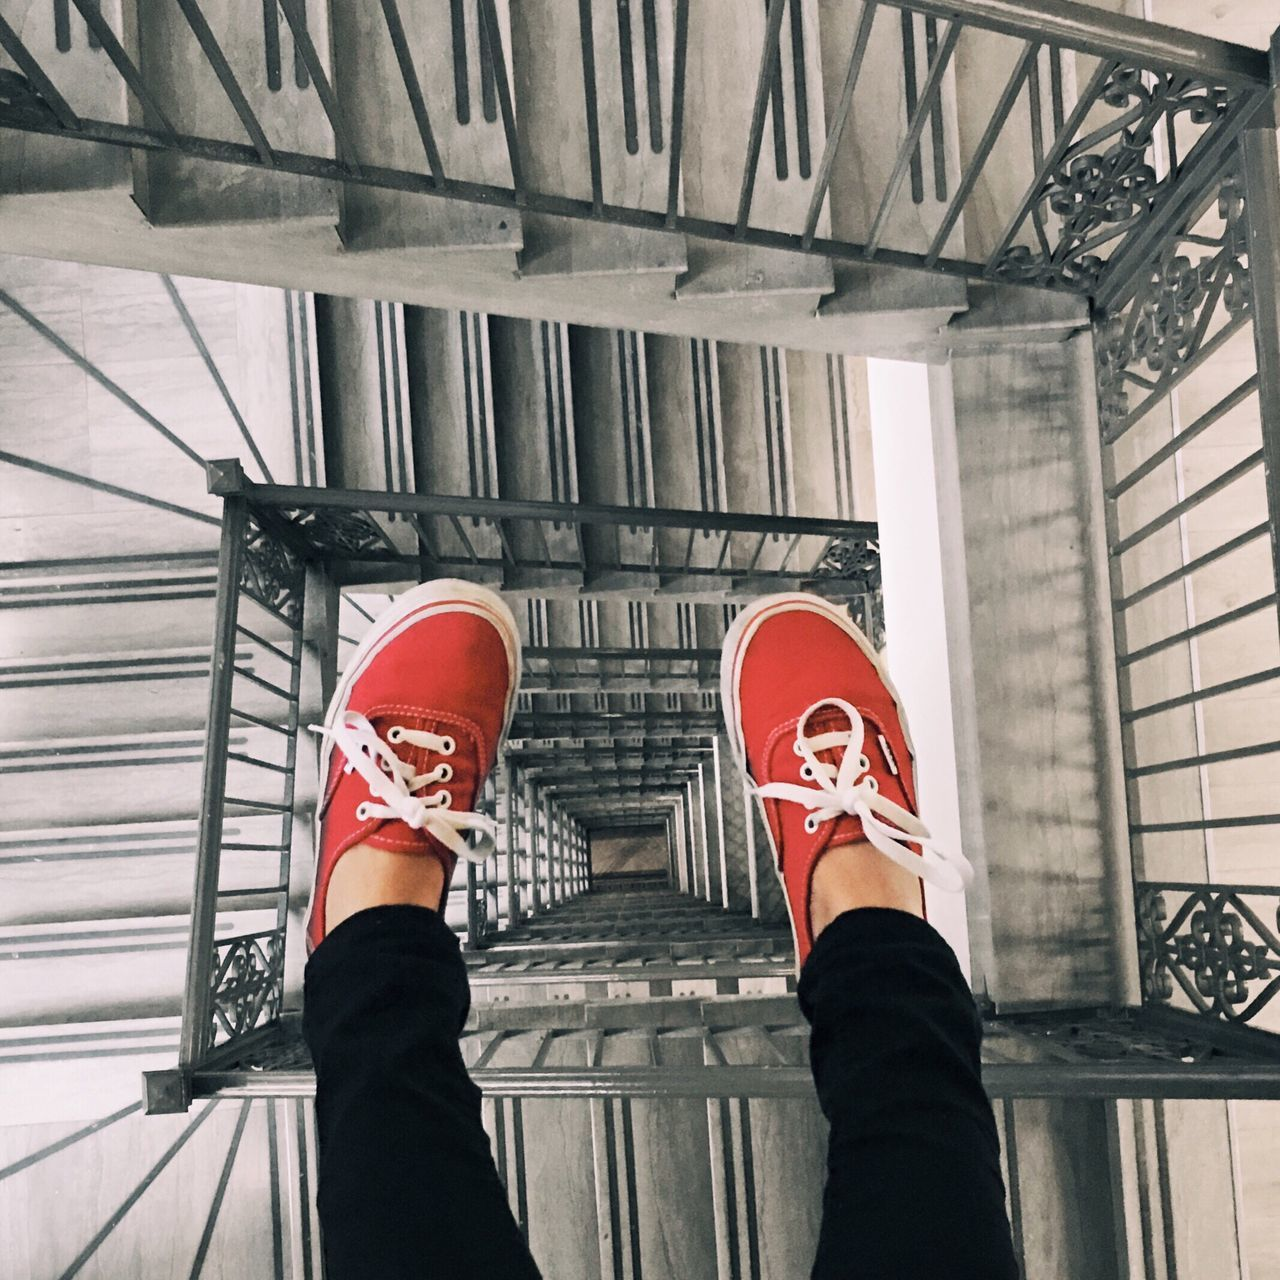 Took this photo for Vans Shoes 50th birthday! Shoes Staircase Perspective Spiral Looking Down Scary Leap Free Fall Fall Freefall Red Sneakers Vans Around Loop Stairs Bottom Jump Leap Float Faith